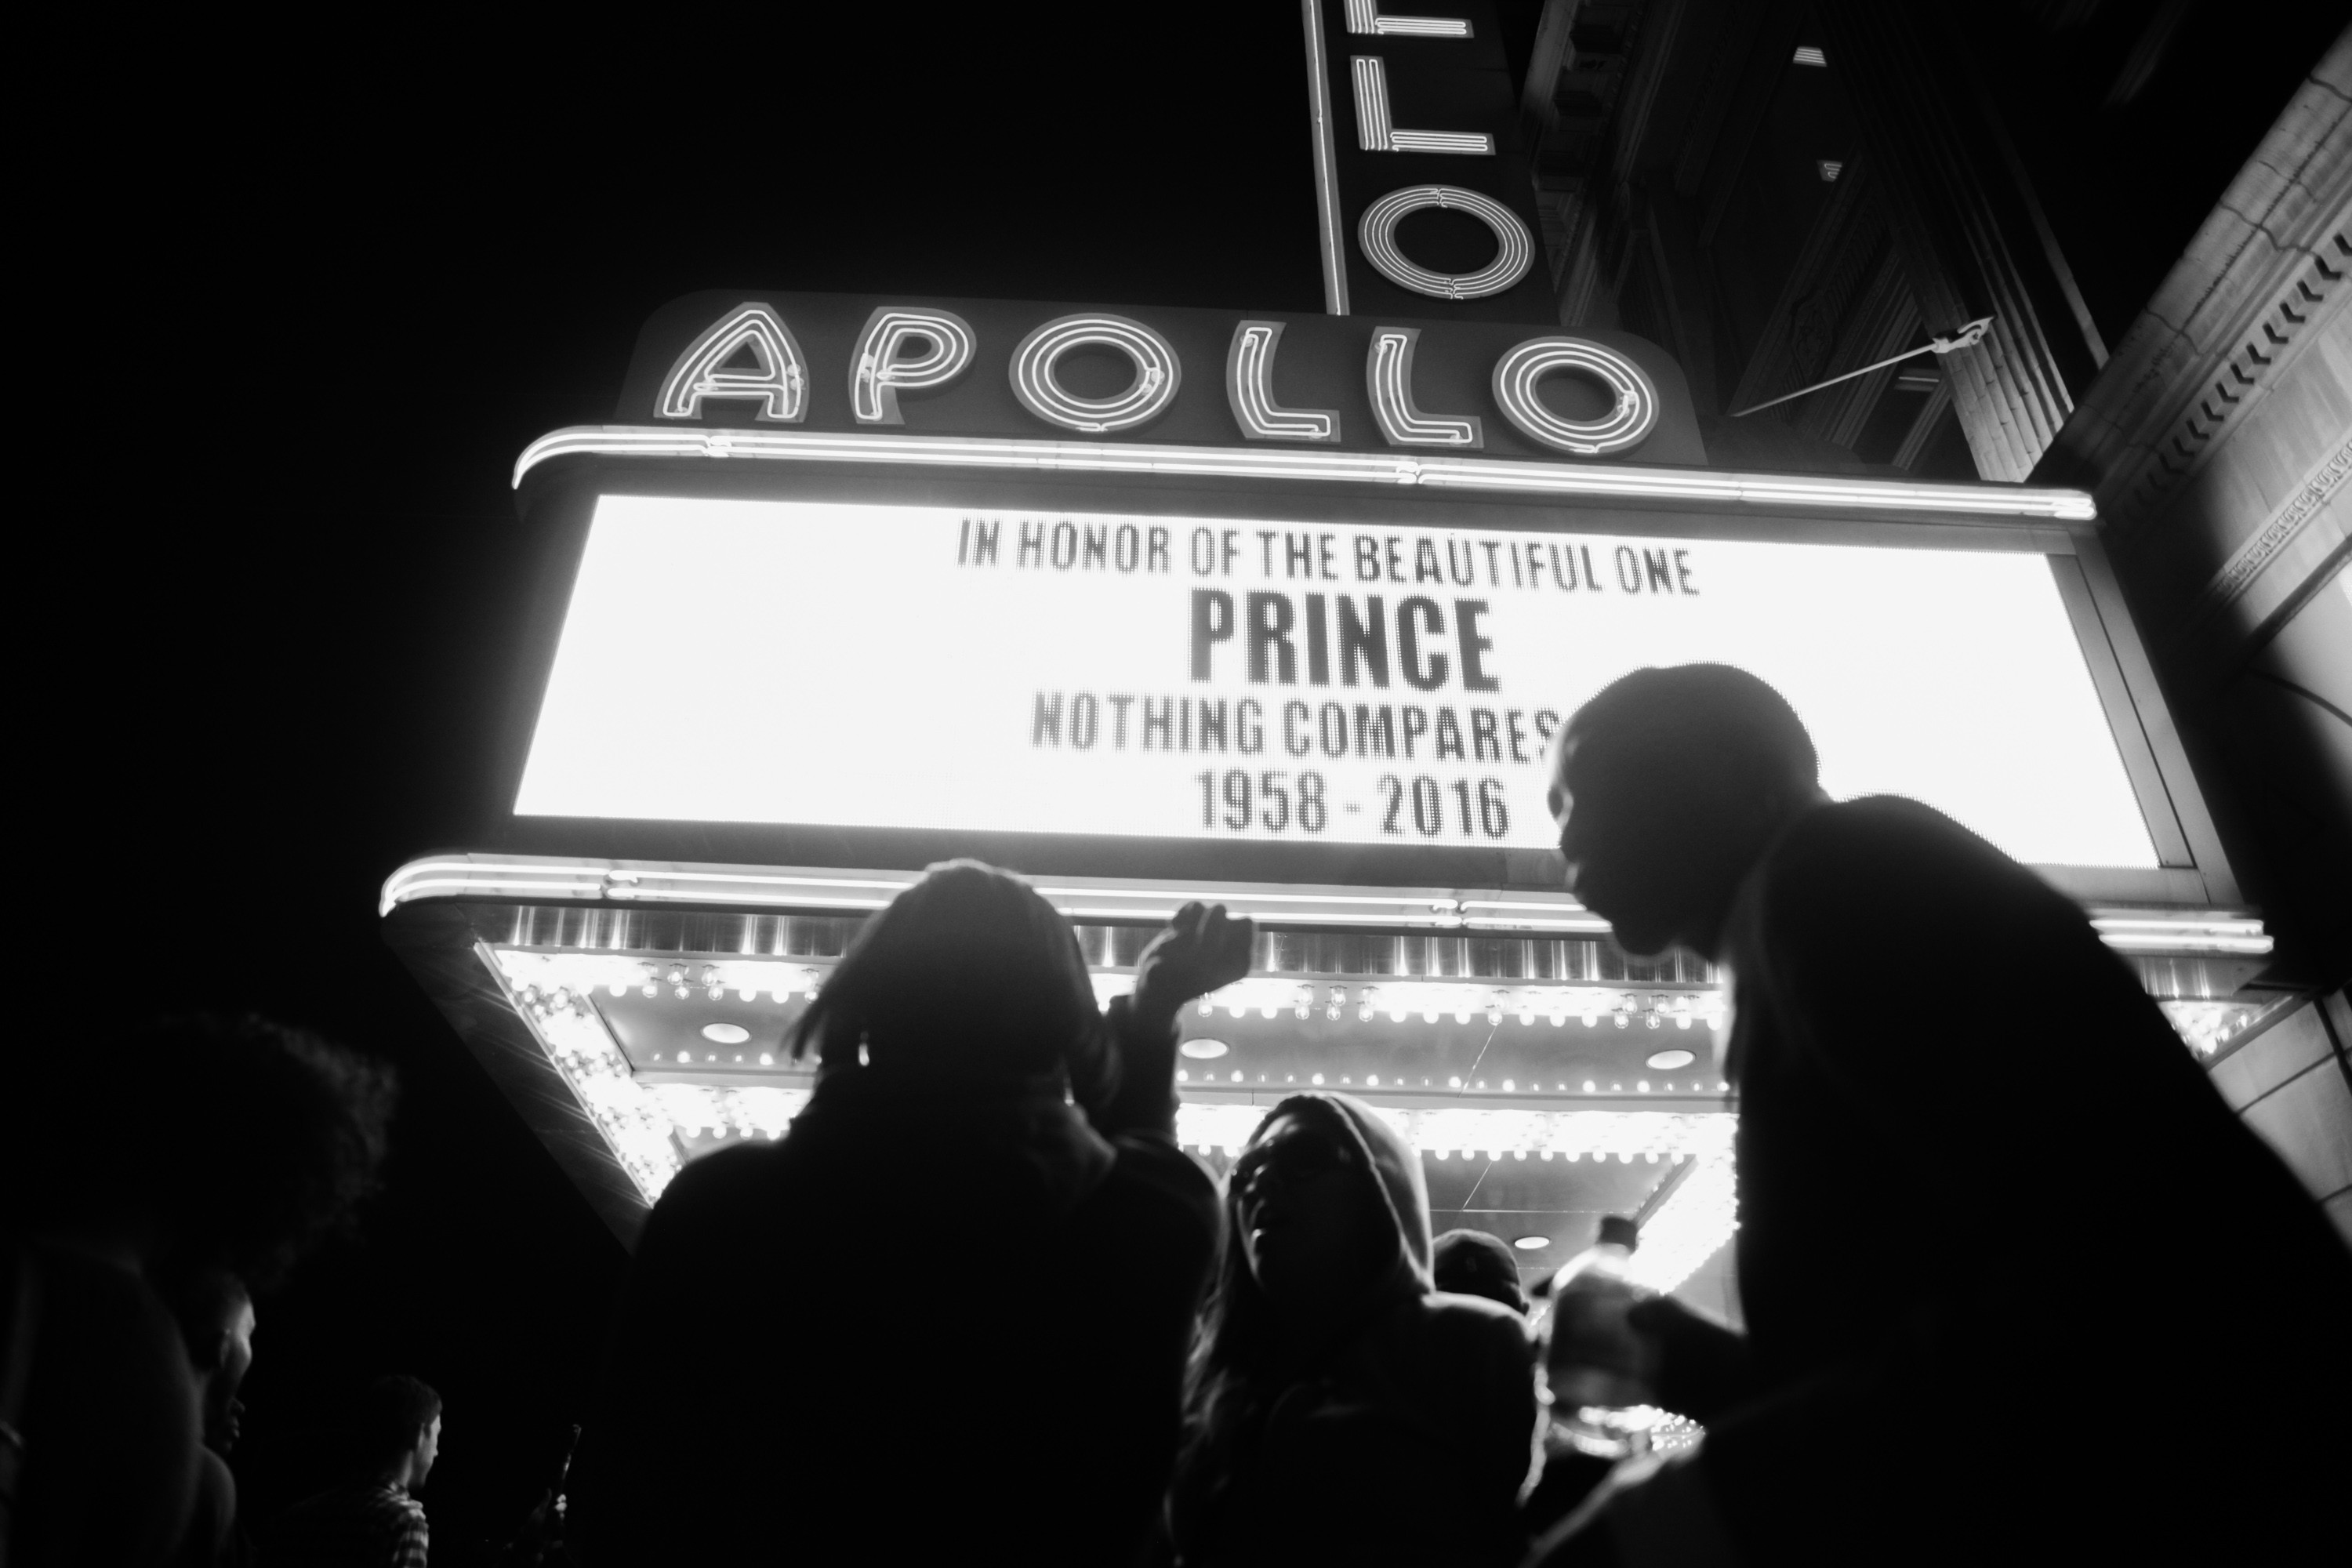 A crowd gathered Thursday night at the Apollo Theater in Harlem to mourn Prince's passing.